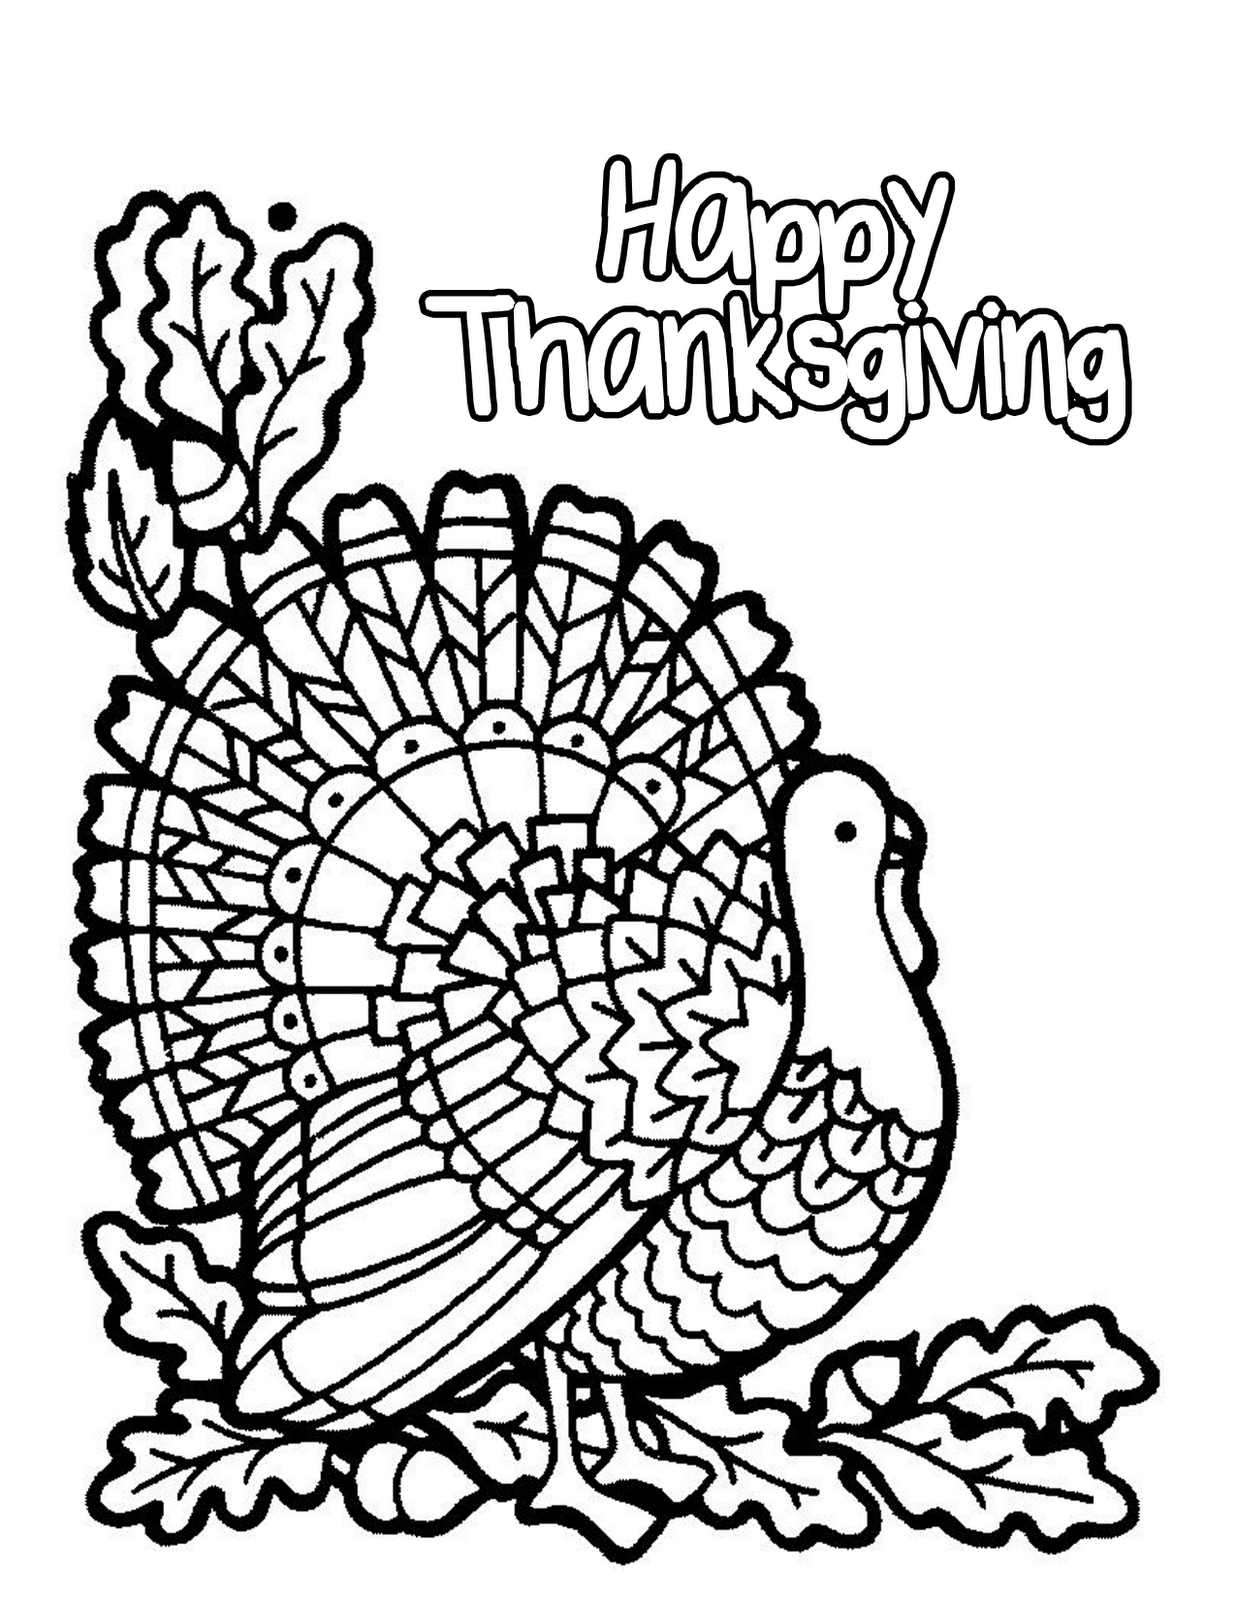 thanksgiving day coloring pages free printable thanksgiving coloring pages for kids thanksgiving day coloring pages